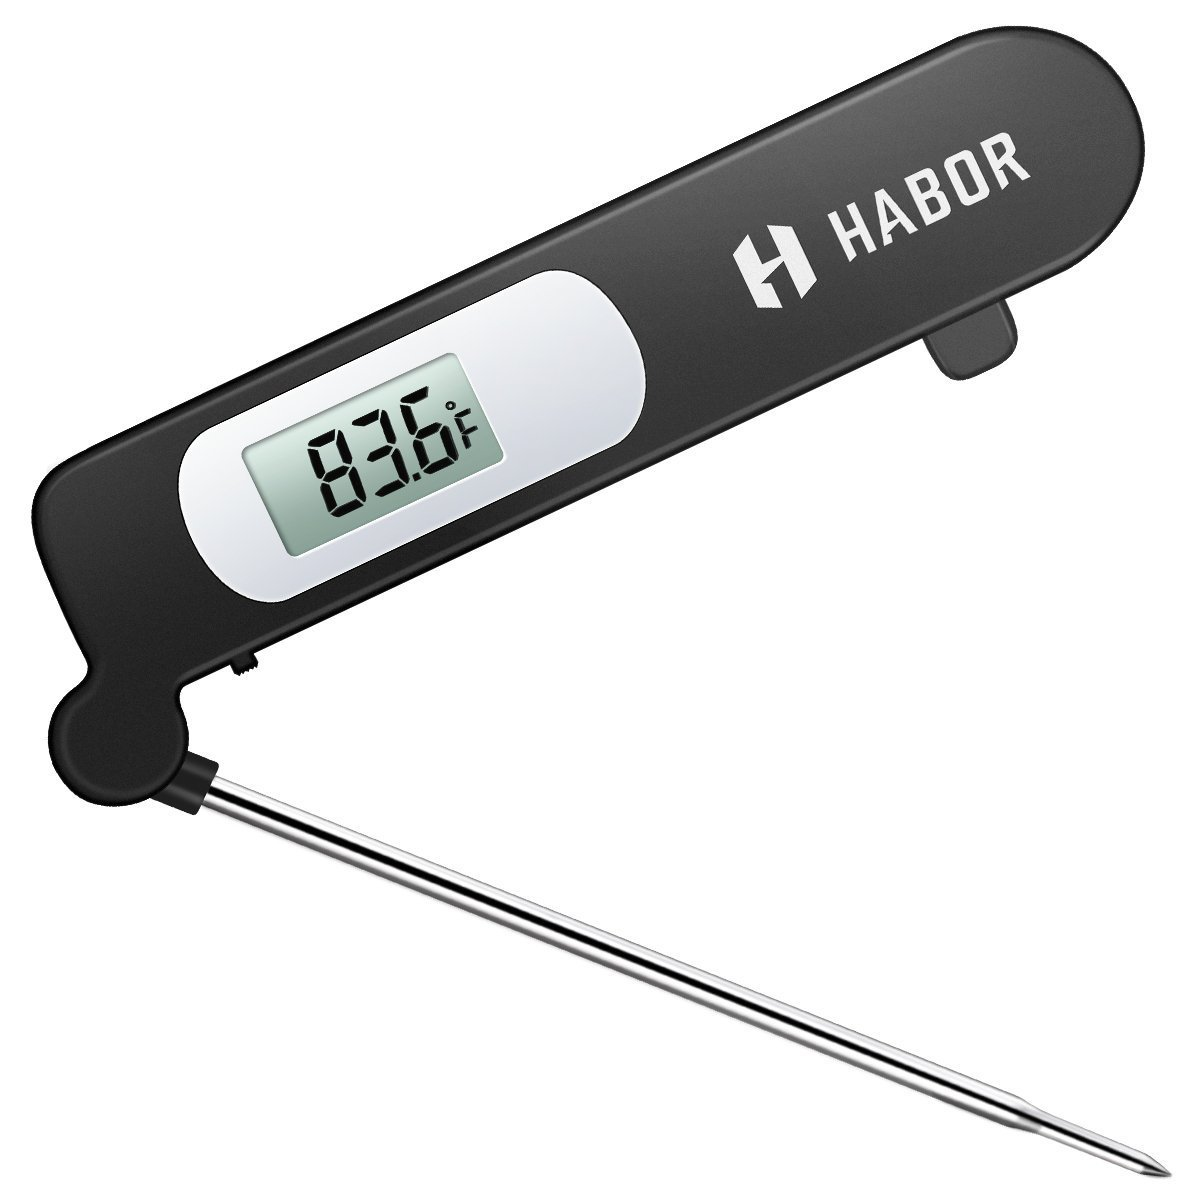 Habor Food Thermometer, Meat Thermometer Kitchen Instant Read Thermometer with Digital LCD, Folding Long Probe for BBQ Grill Smokers Kitchen Chicken Cake Brewing Milk CP3B